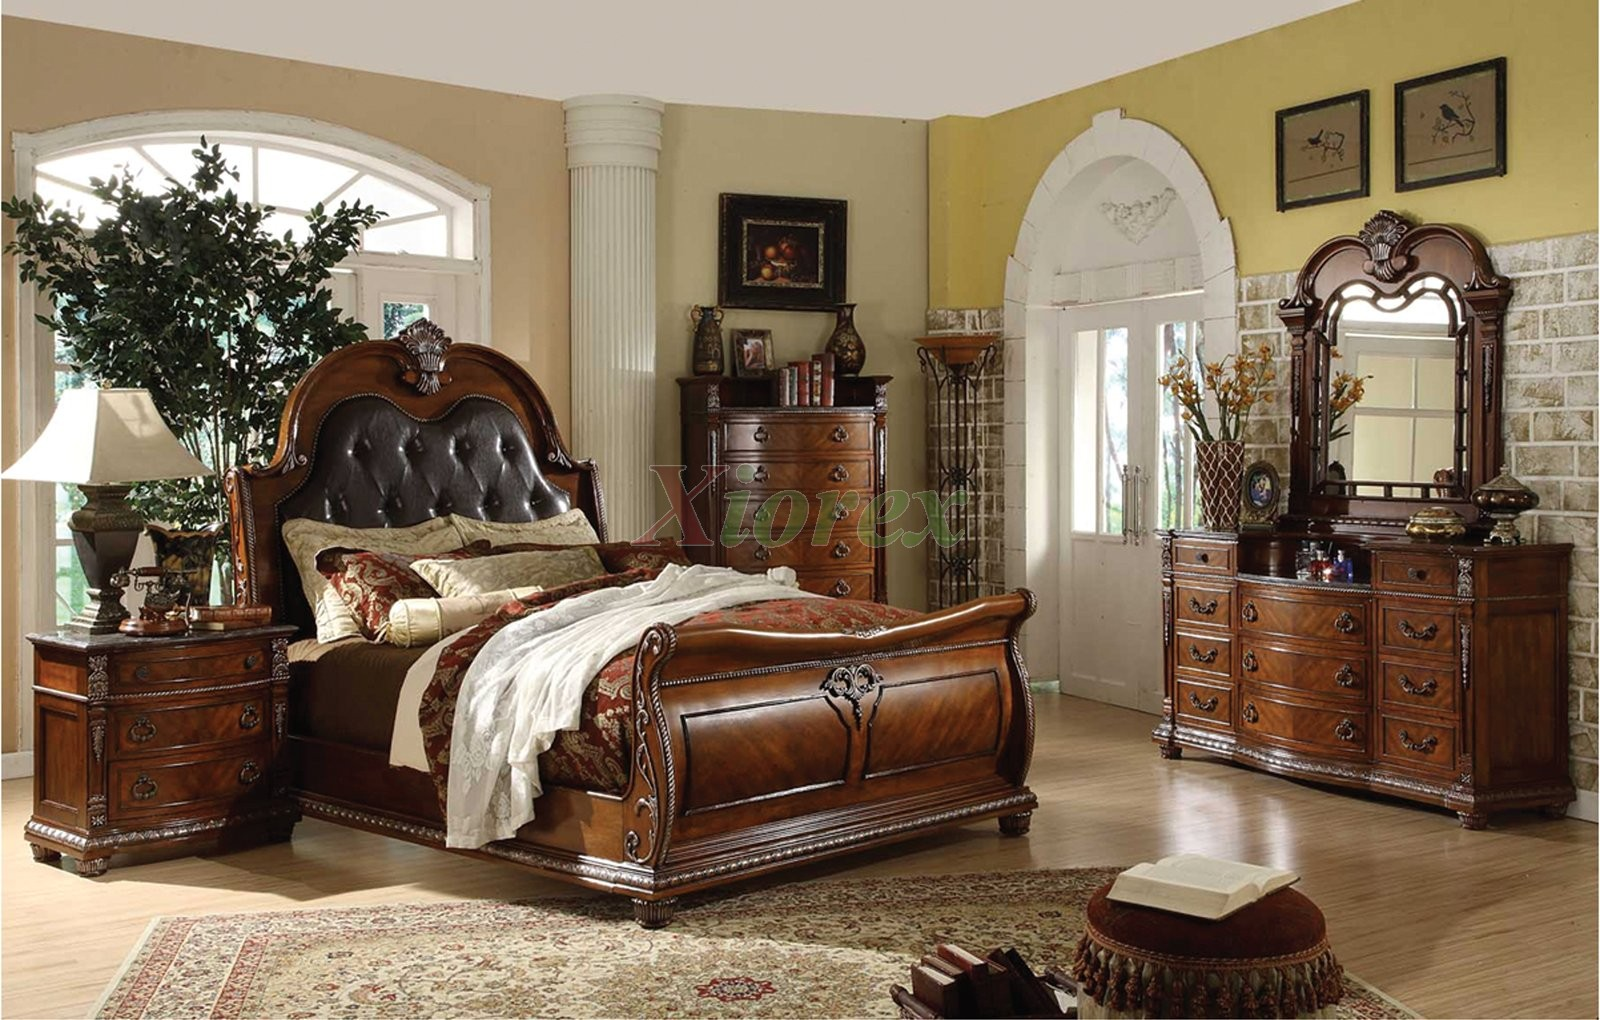 https://www.xiorex.com/media/catalog/product/cache/1/image/ce917ae61abb794fb66945dcc312e713/t/r/traditional_sleigh_bedroom_furniture_set_with_leather_headboard_-_tdc0000106.jpg